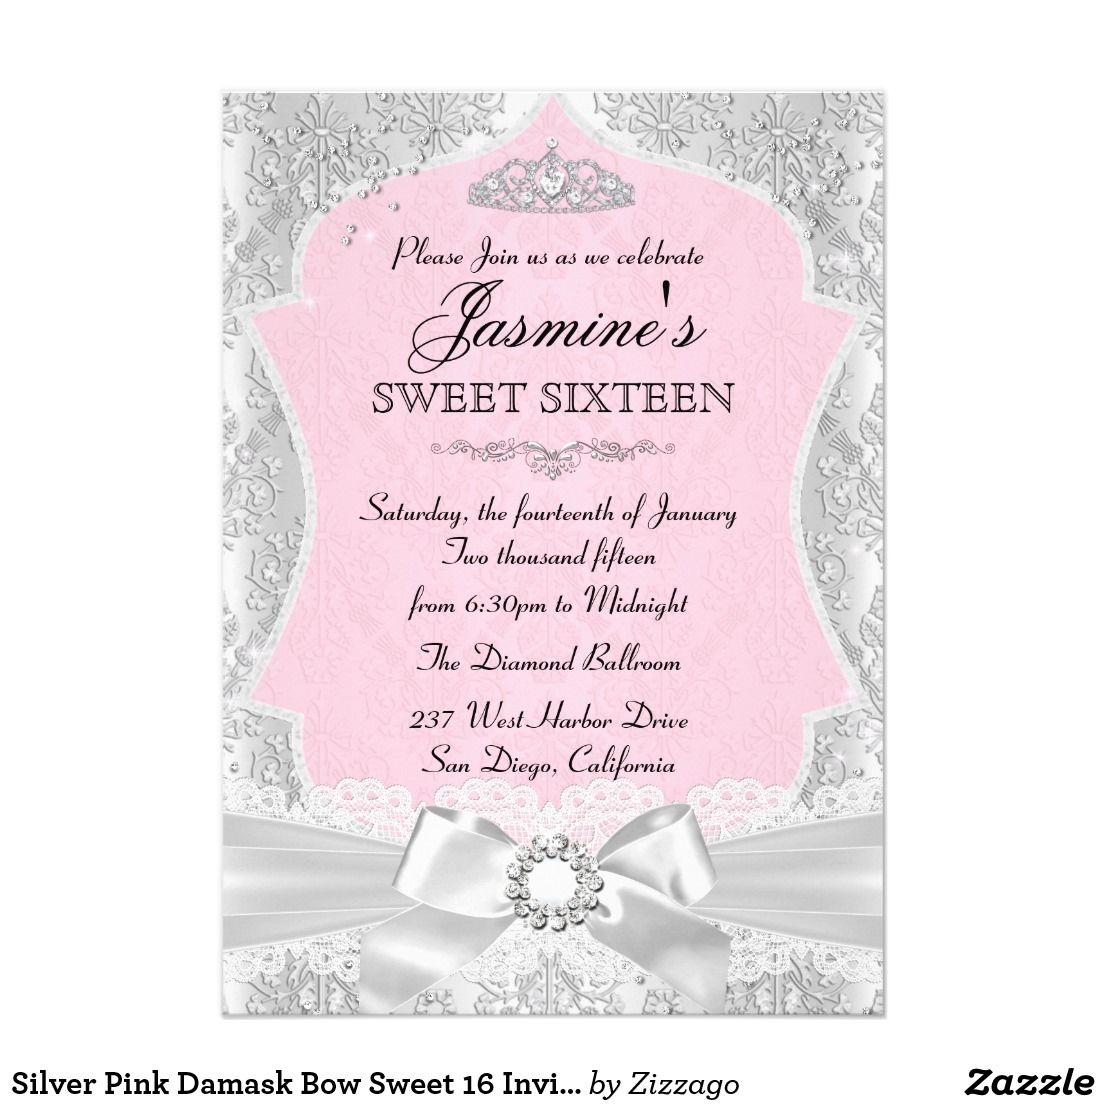 Silver Pink Damask Bow Sweet 16 Invitation Light Pink & Silver Sweet ...